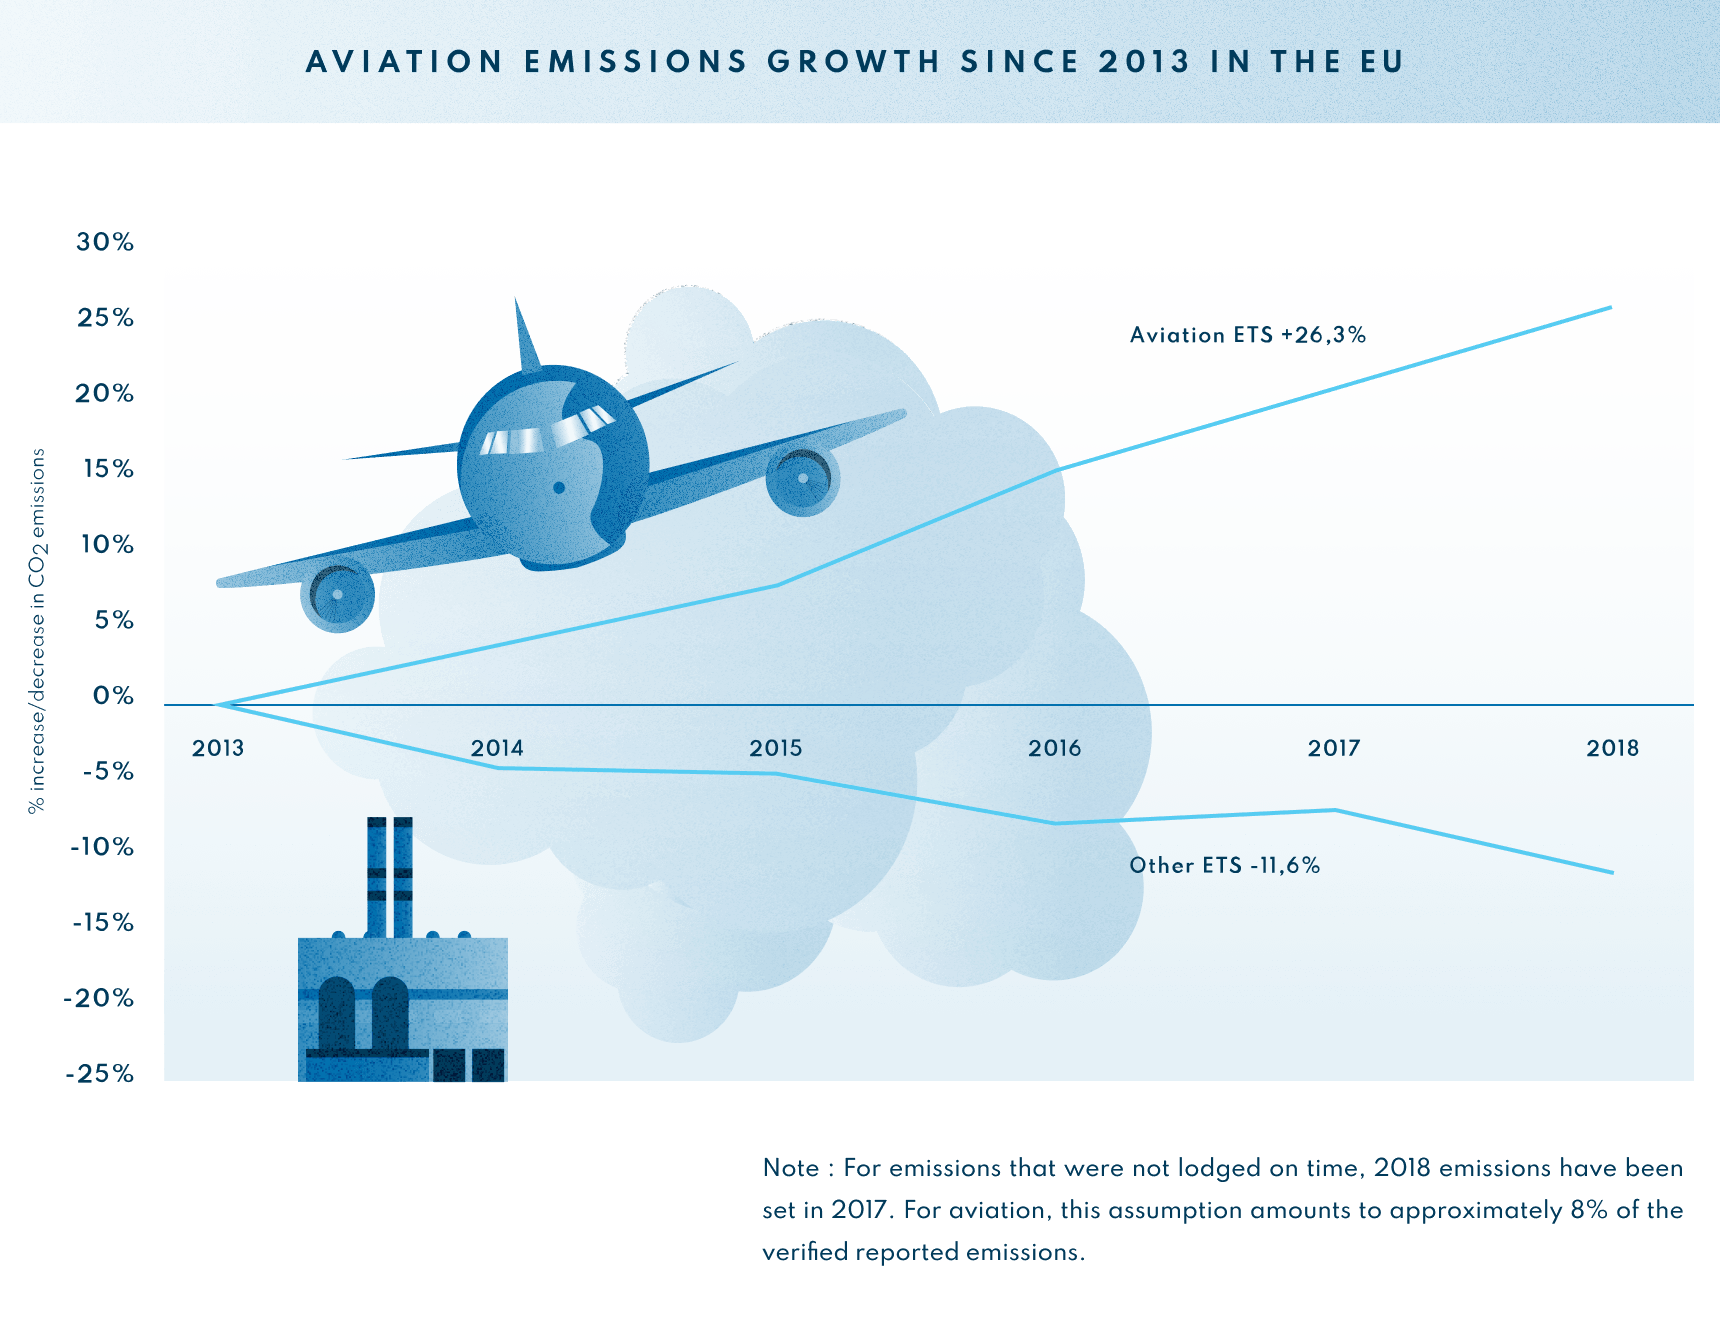 infographic-Aviation emissions growths since 2013 in the EU